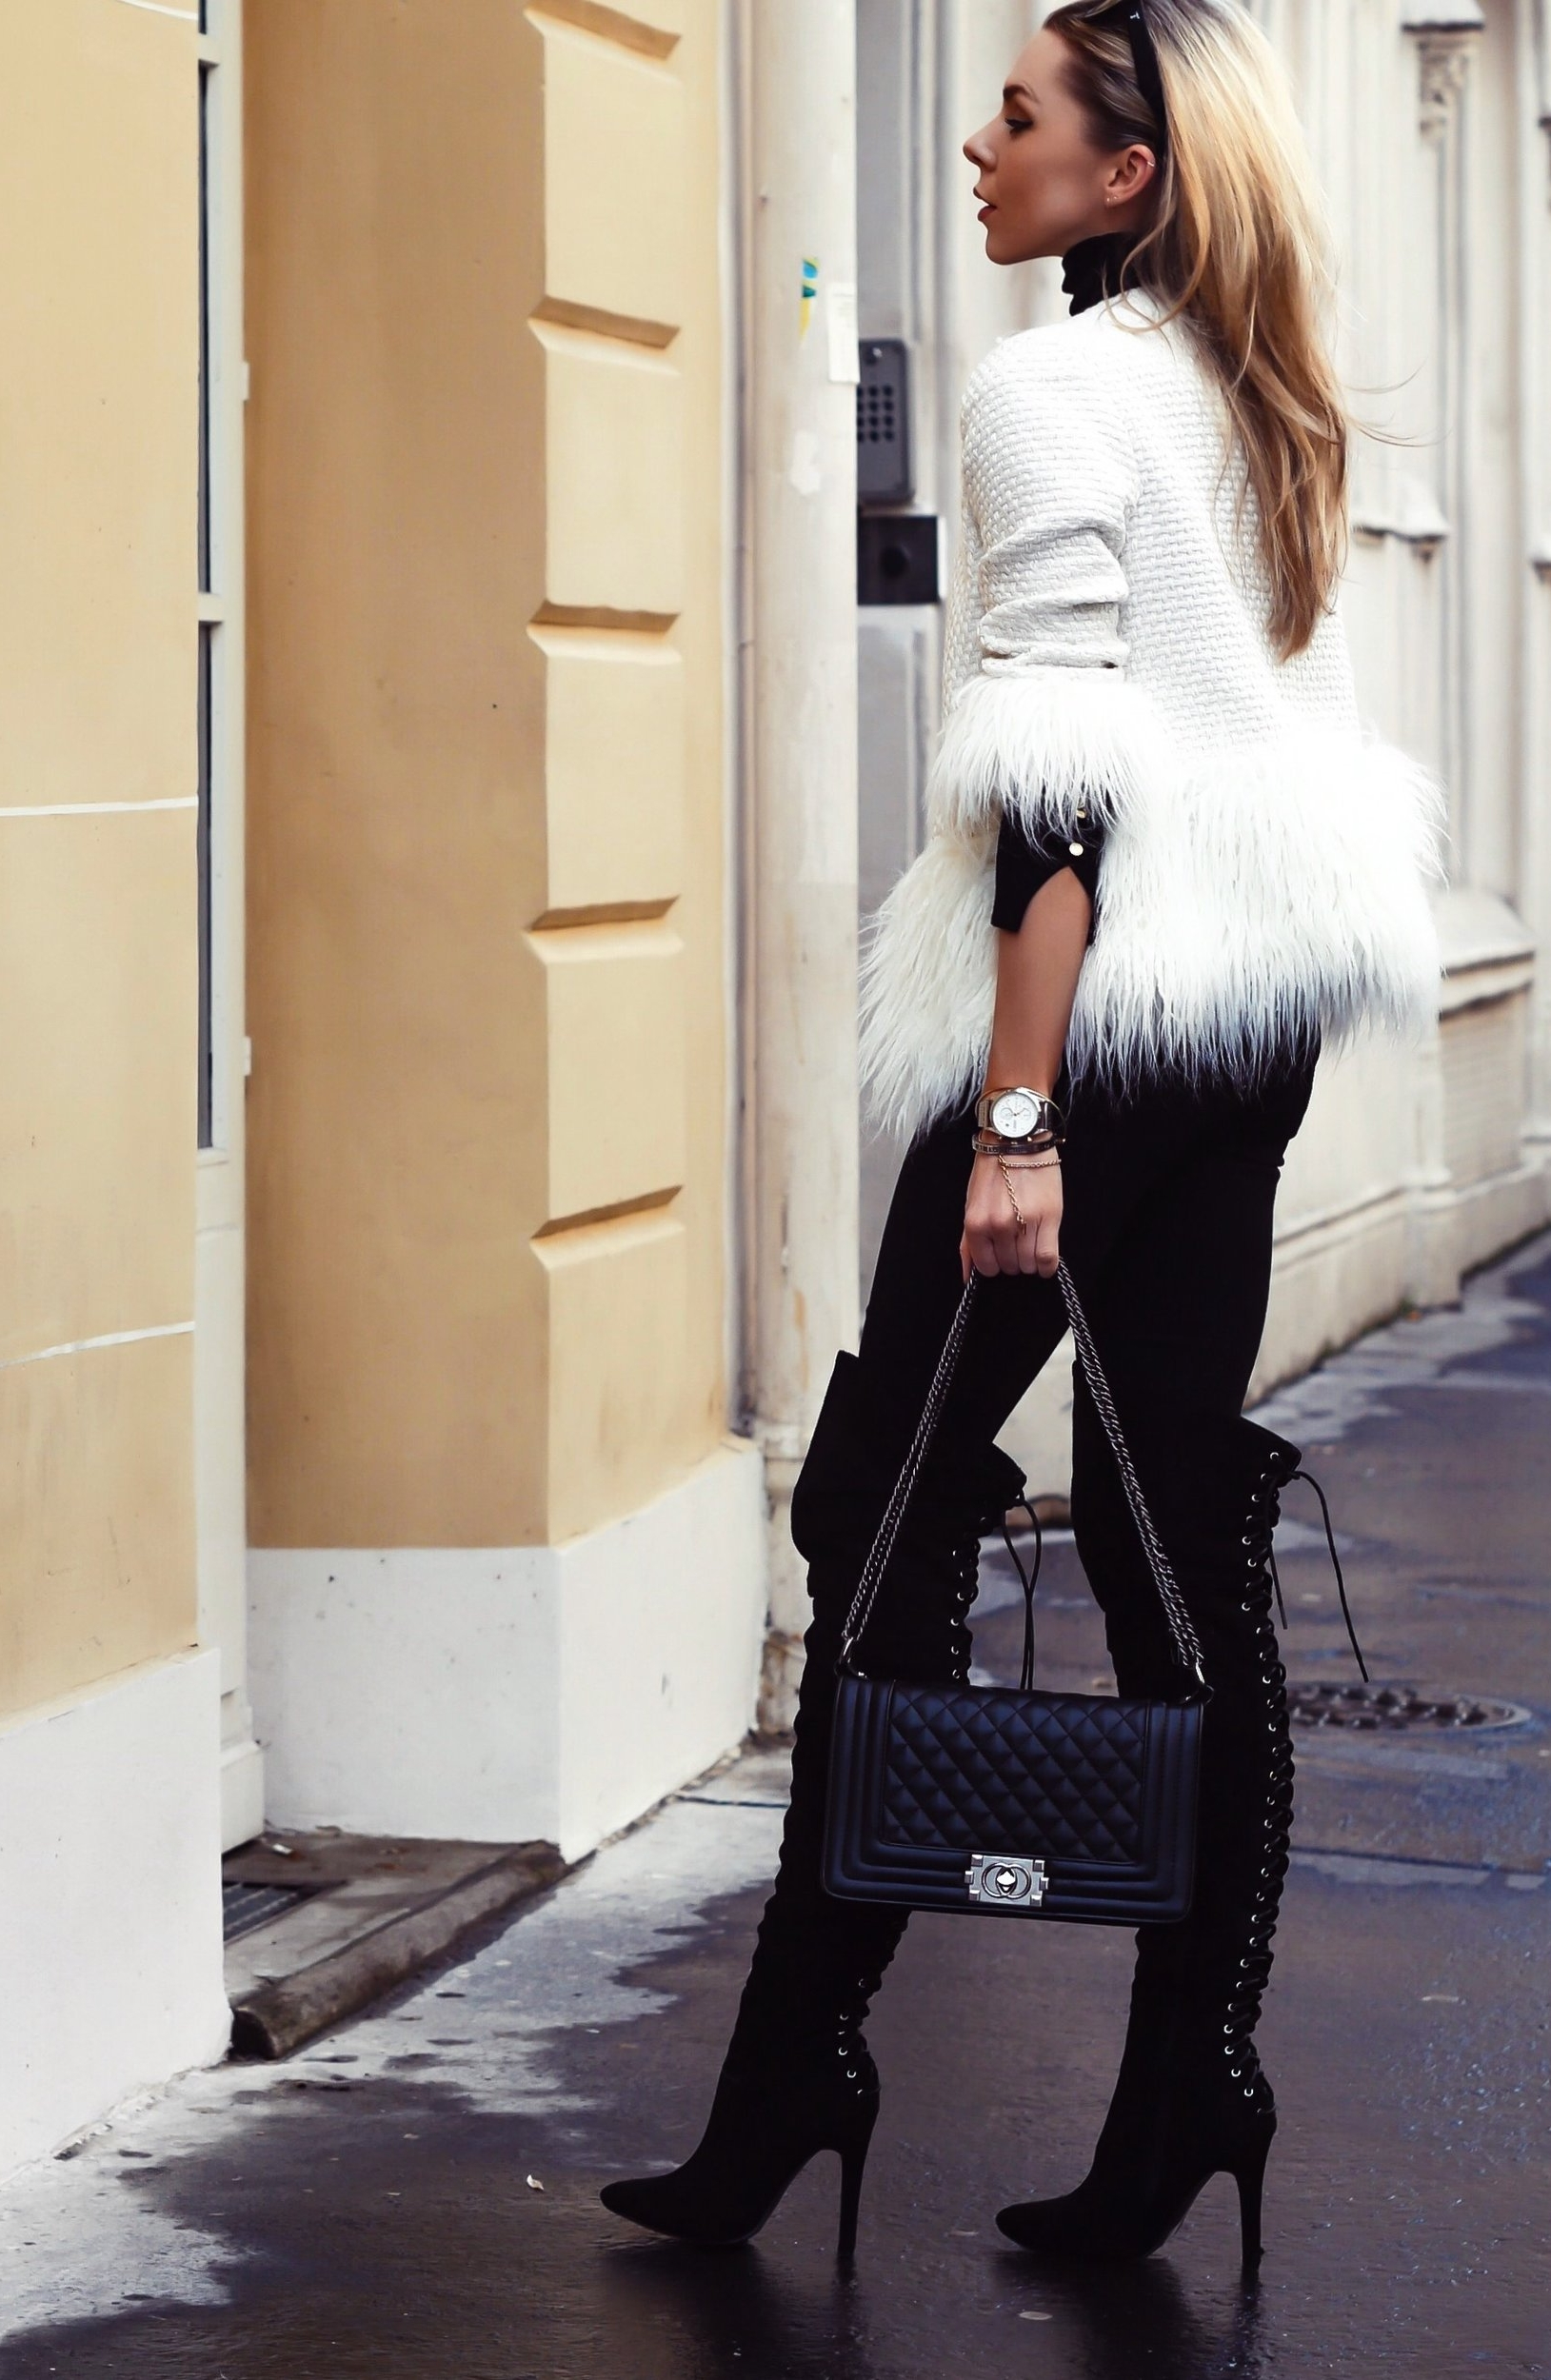 paris, travel, haul, affordable fashion, streetstyle, inspiration, what to wear, fashion, lookbook, style, fashion blogger, laura blair, youtuber, london fashion girl, hotel theatre, happy culture